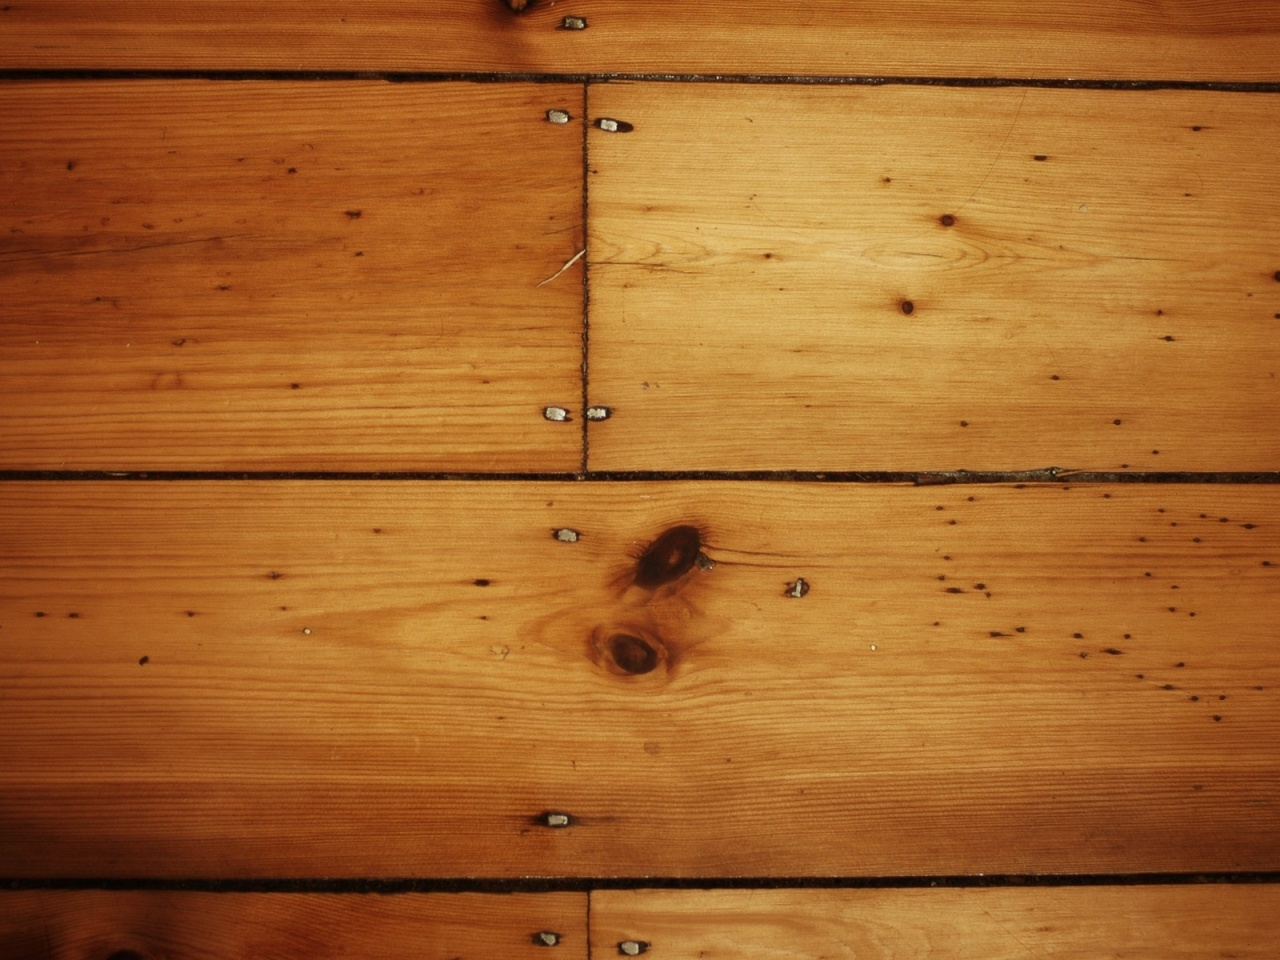 1280x720 wood panels vimeo cover image How to disguise wood paneling